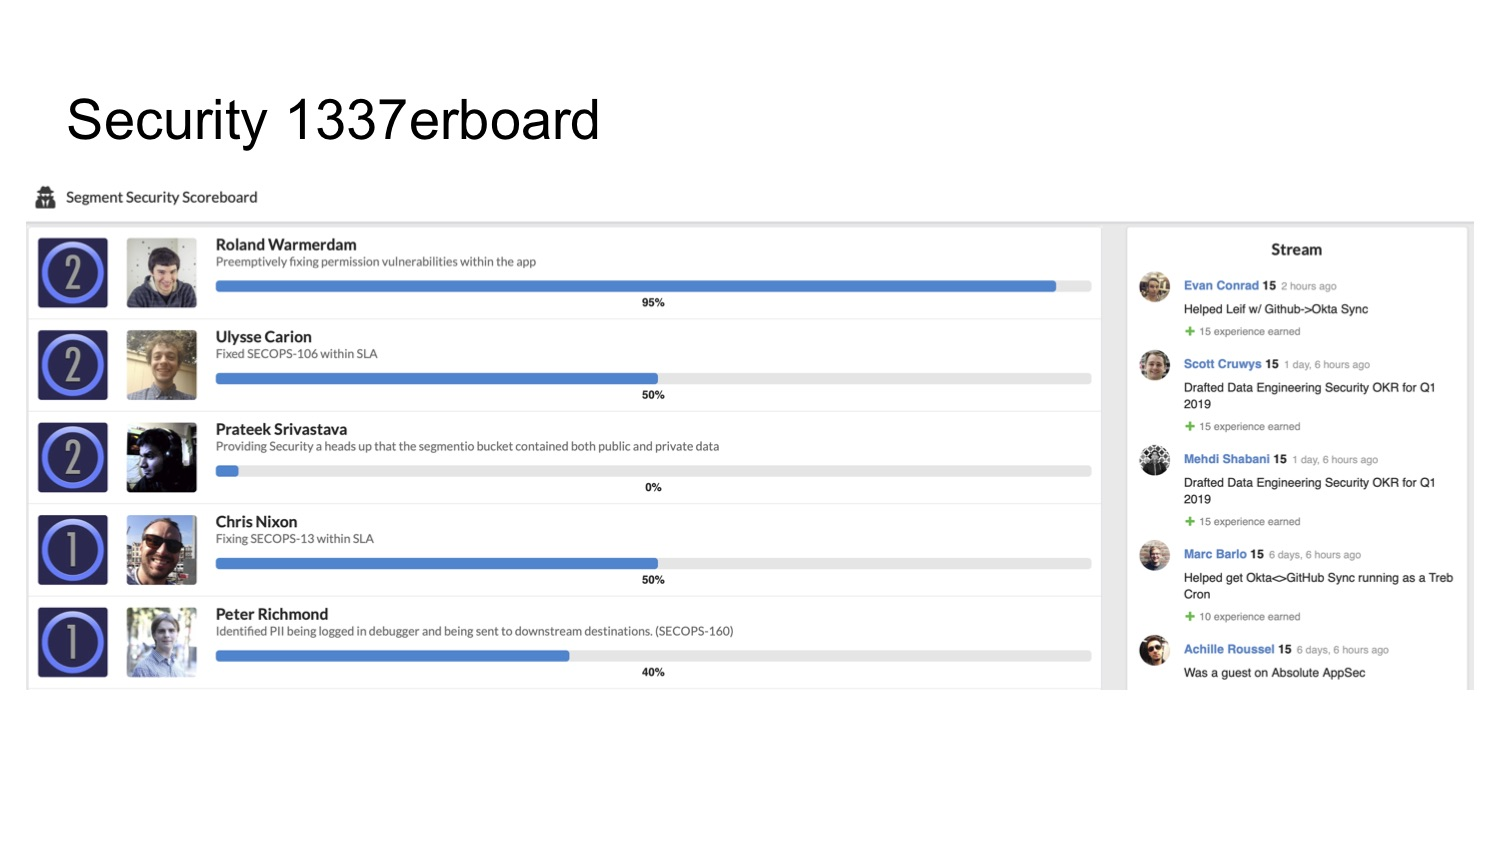 Working with Devs: 1337erboard